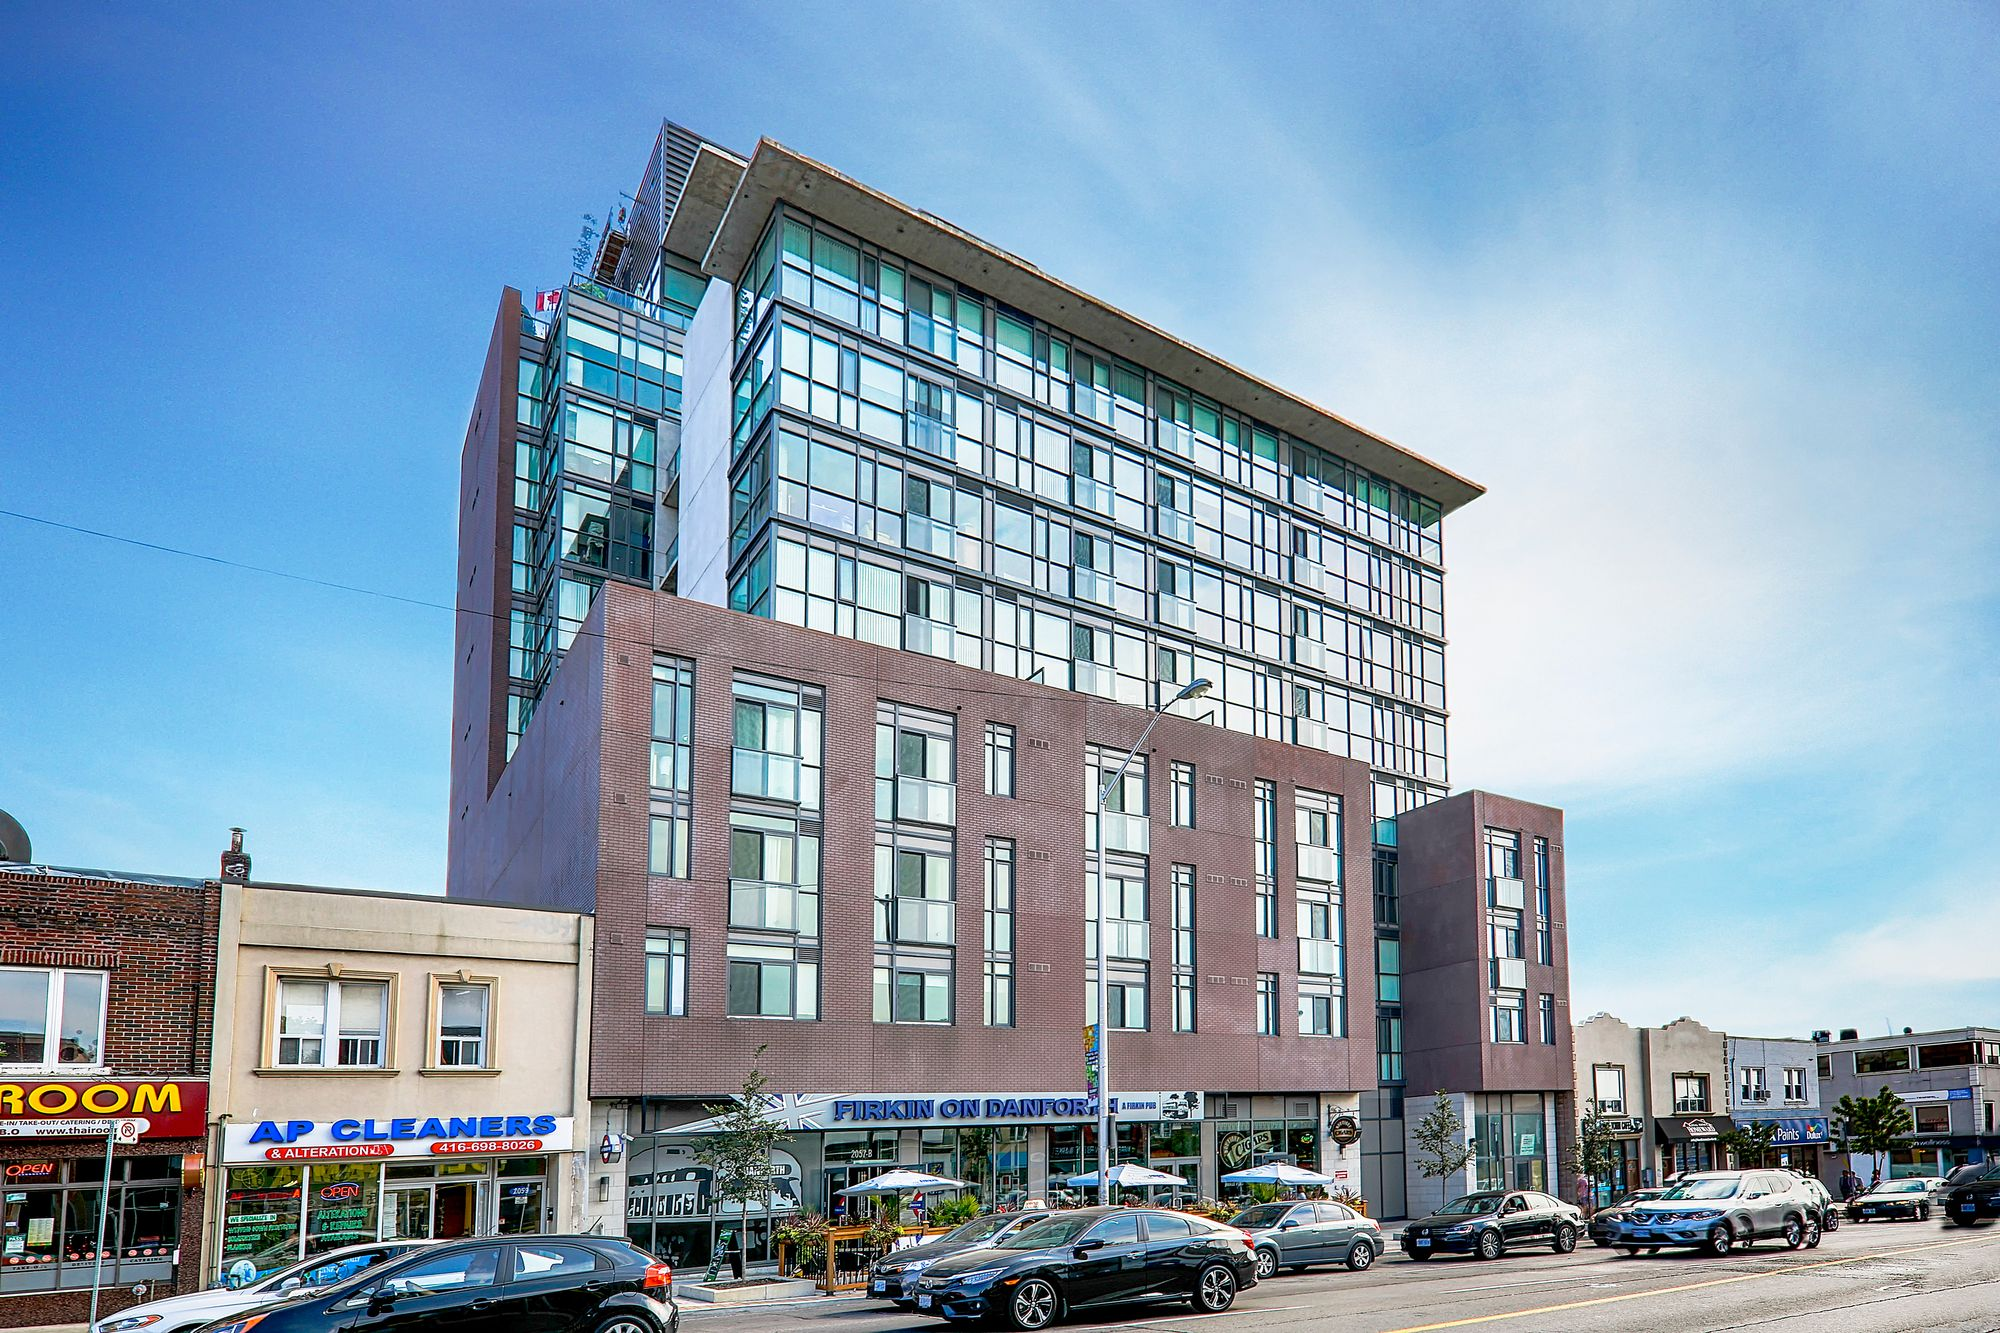 2055 Danforth Avenue. This condo at Carmelina Condos is located in  East End, Toronto - image #1 of 5 by Strata.ca